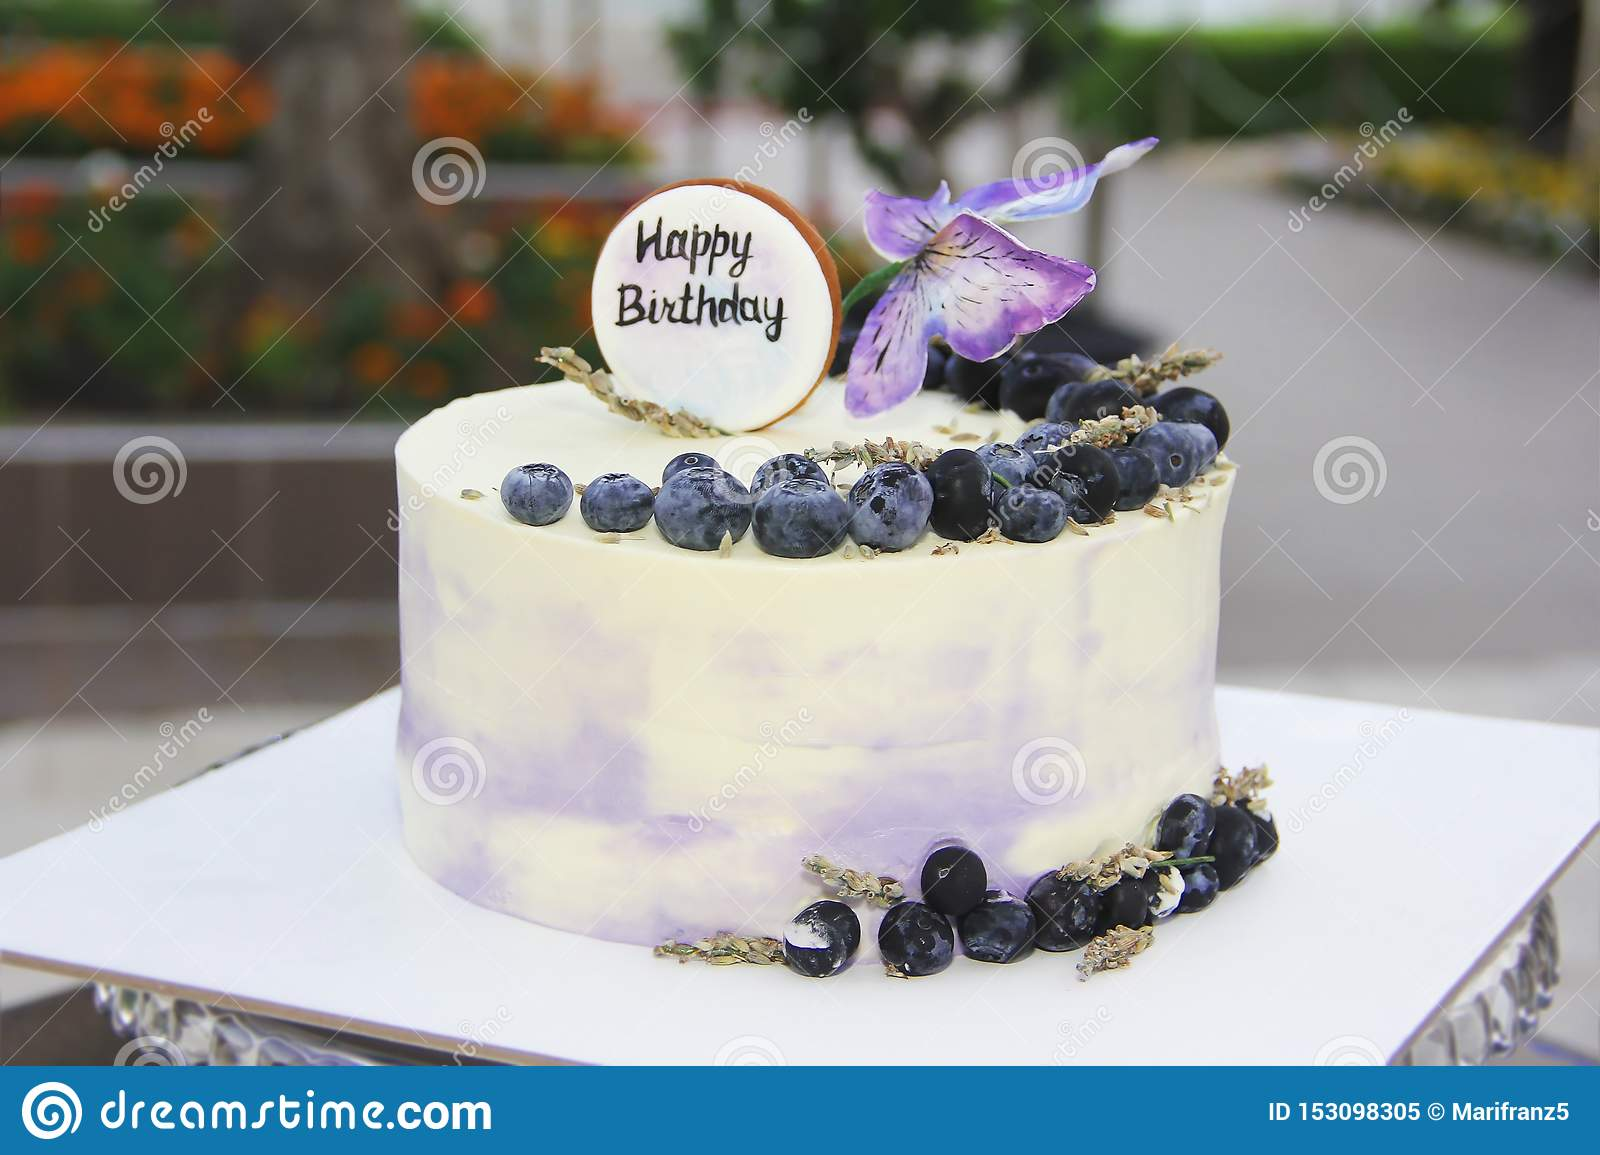 Astonishing Biscuit Festive Cake Cheesecake With Blueberries And Butterflies Funny Birthday Cards Online Fluifree Goldxyz